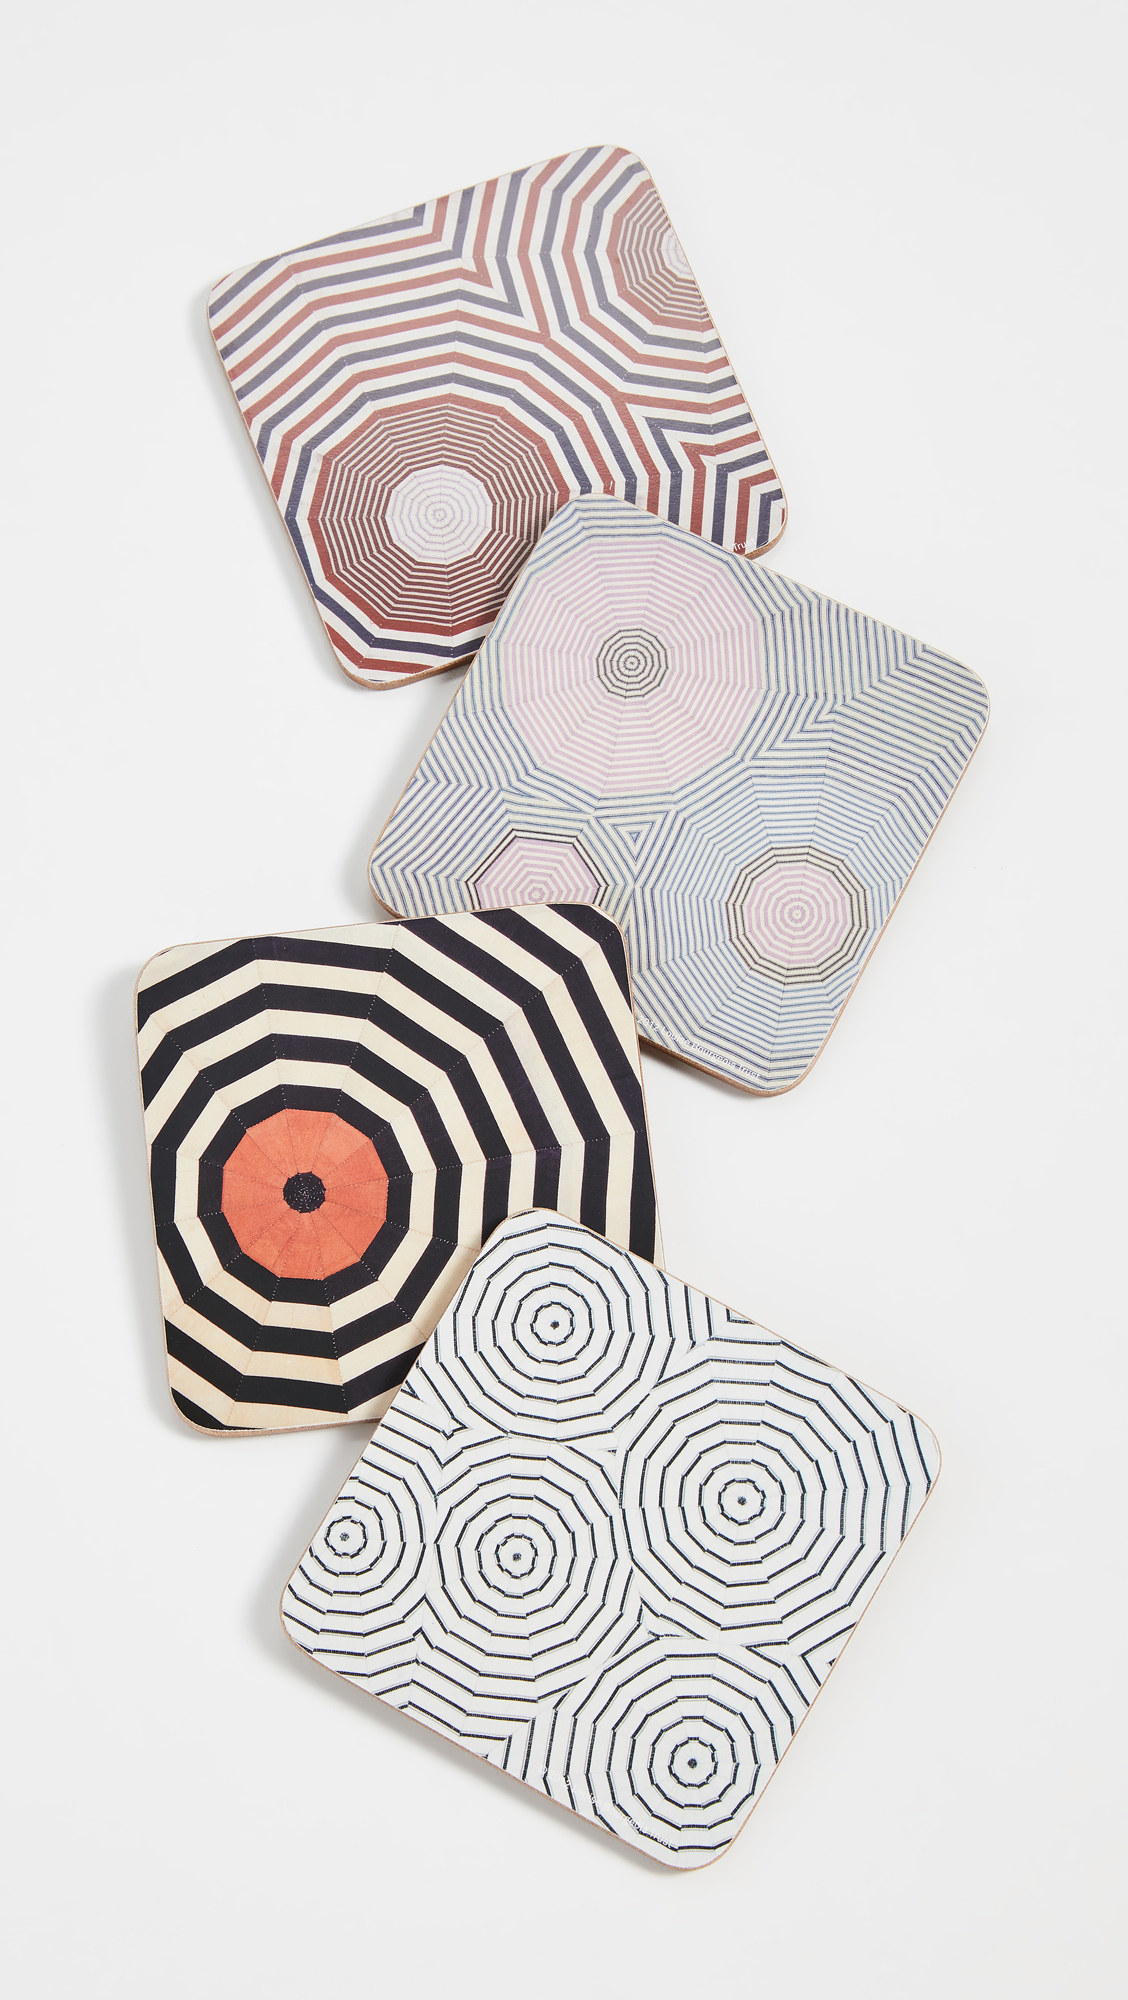 The coasters, which feature multicolored geometric prints